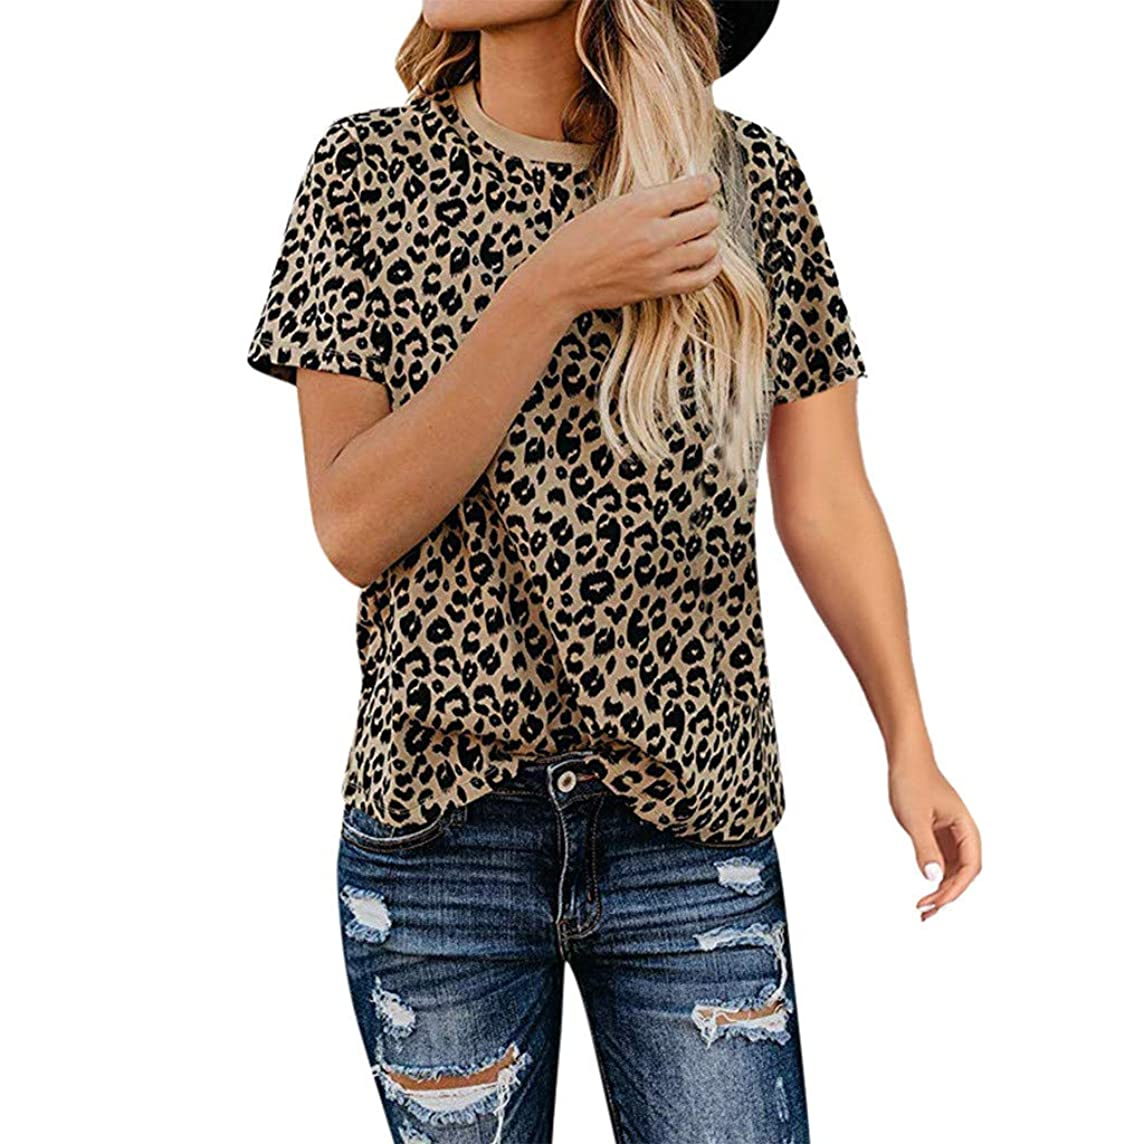 Yucode Women Leopard O-Neck Short Sleeve Tops Fashion Casual Loose Blouse Summer T-Shirt